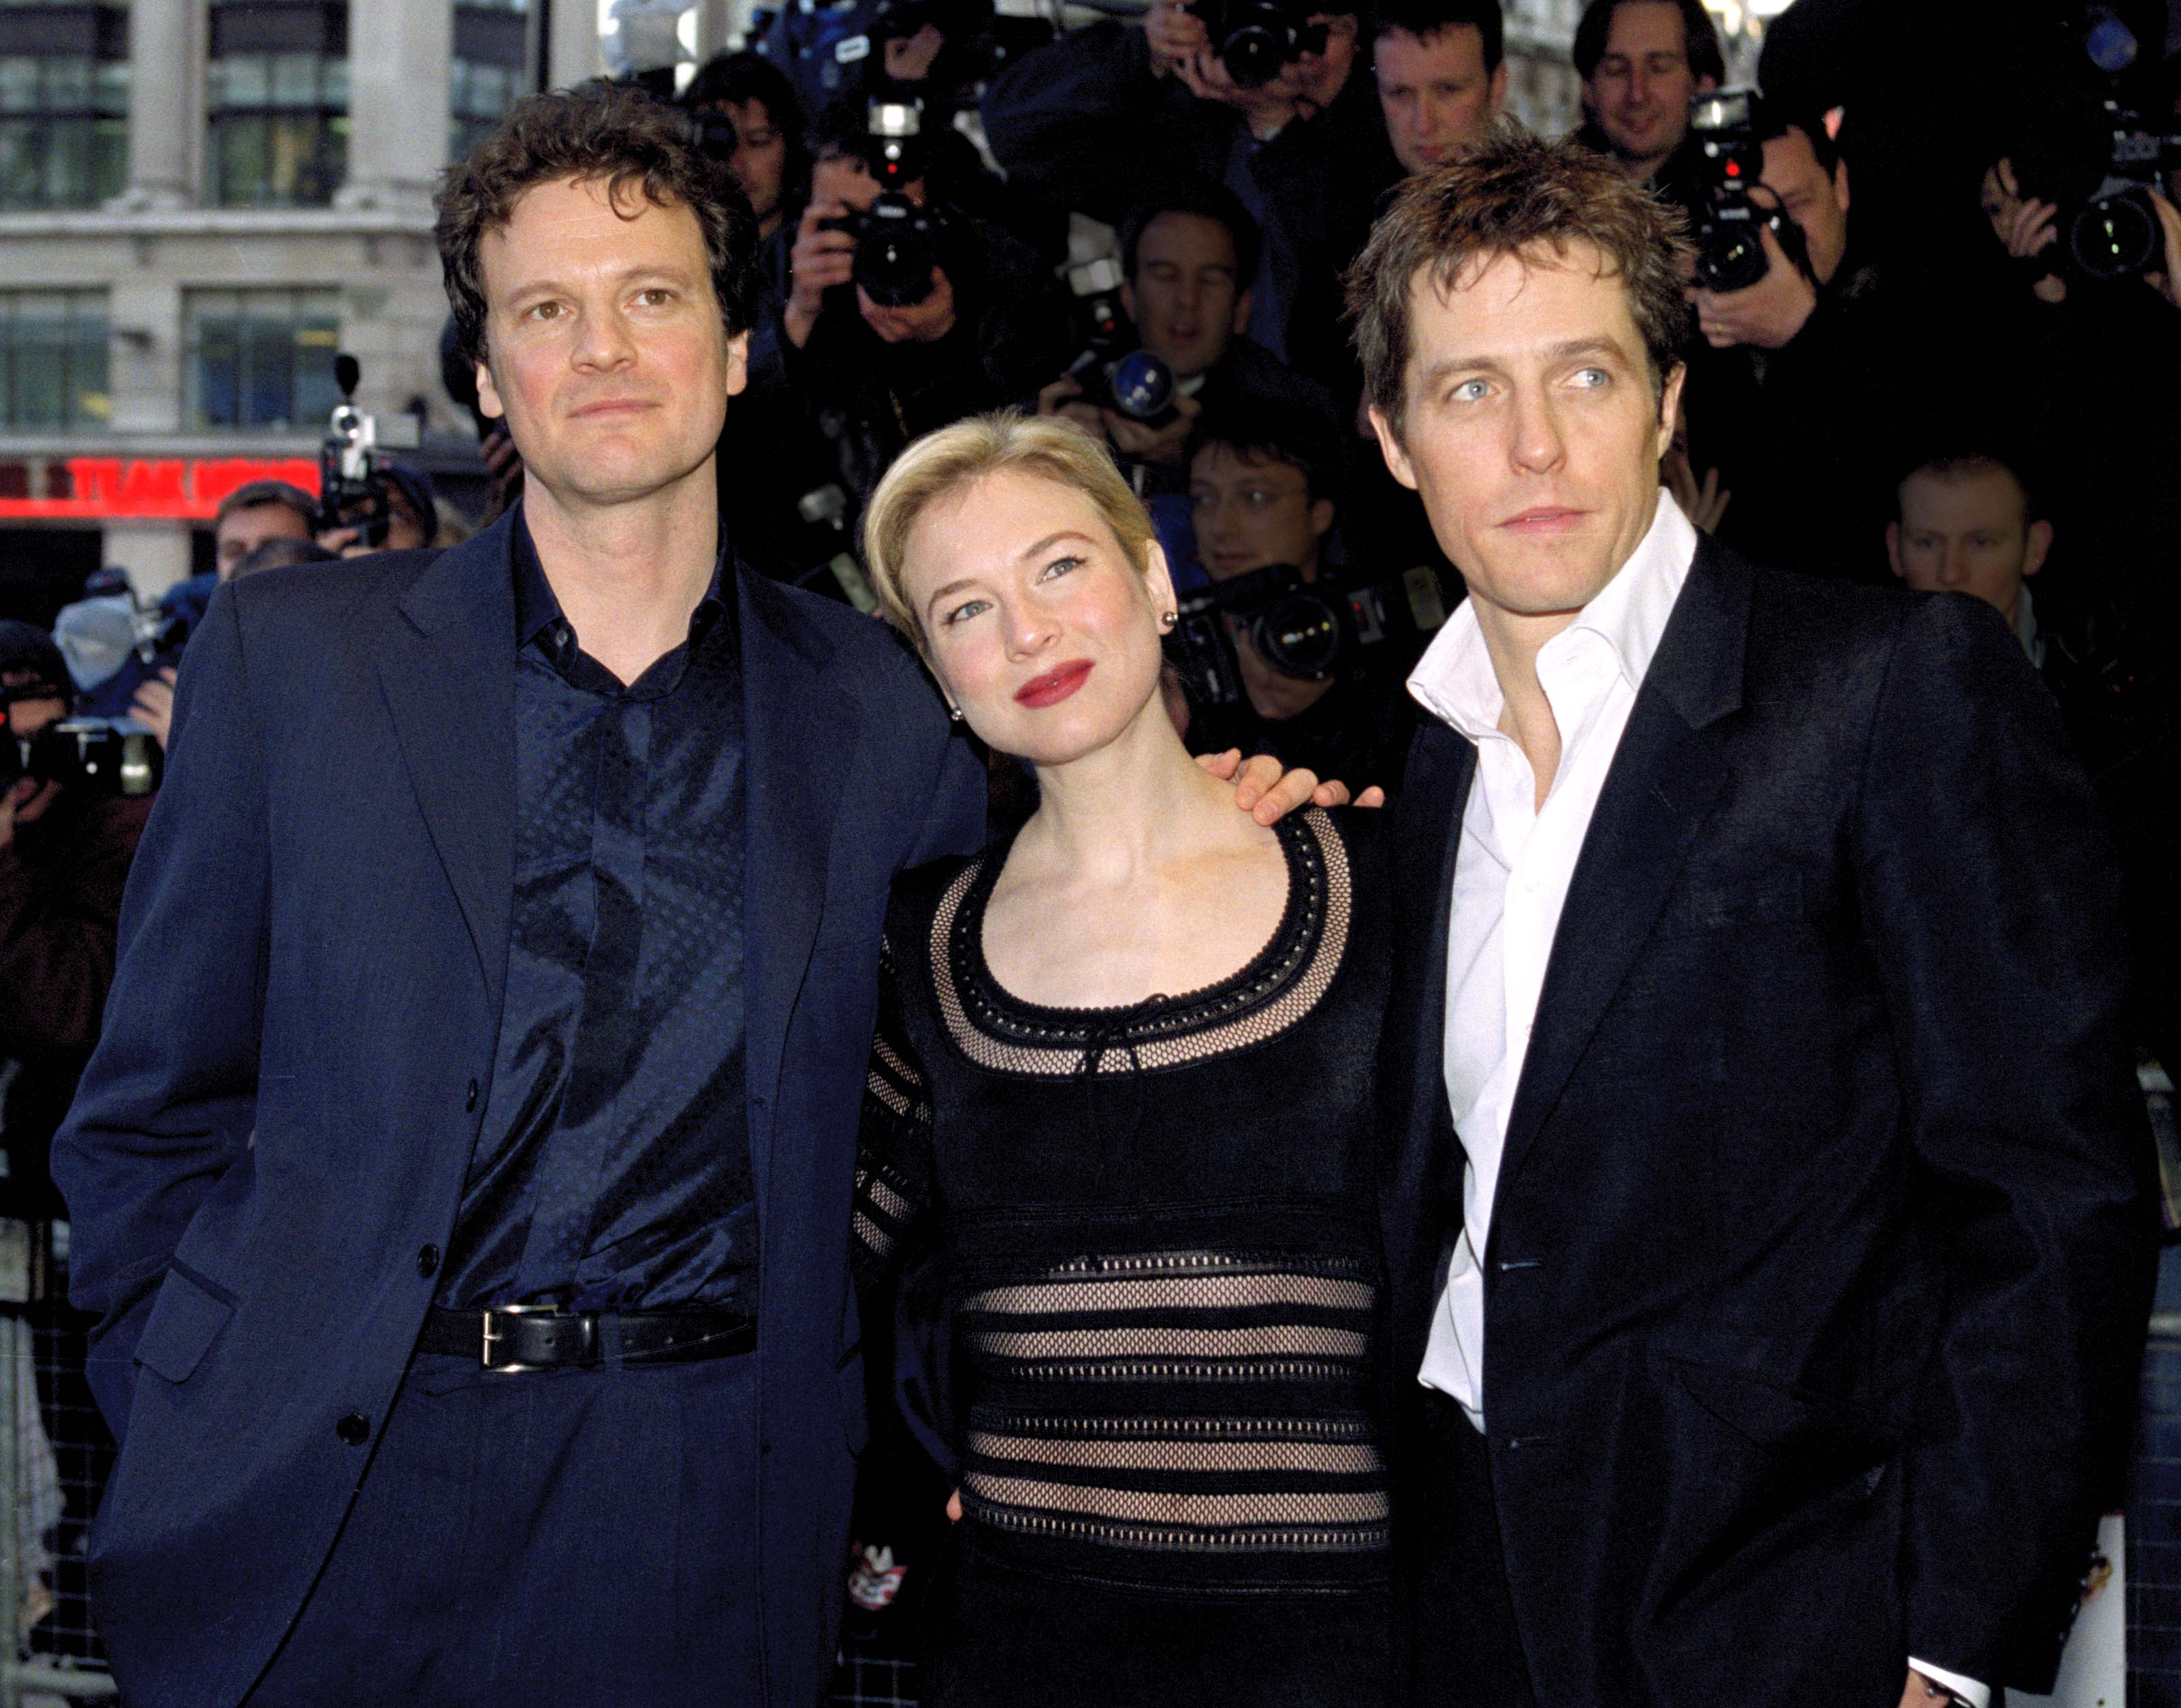 The Bridget Jones Cast At Their First Premiere Event Is About As